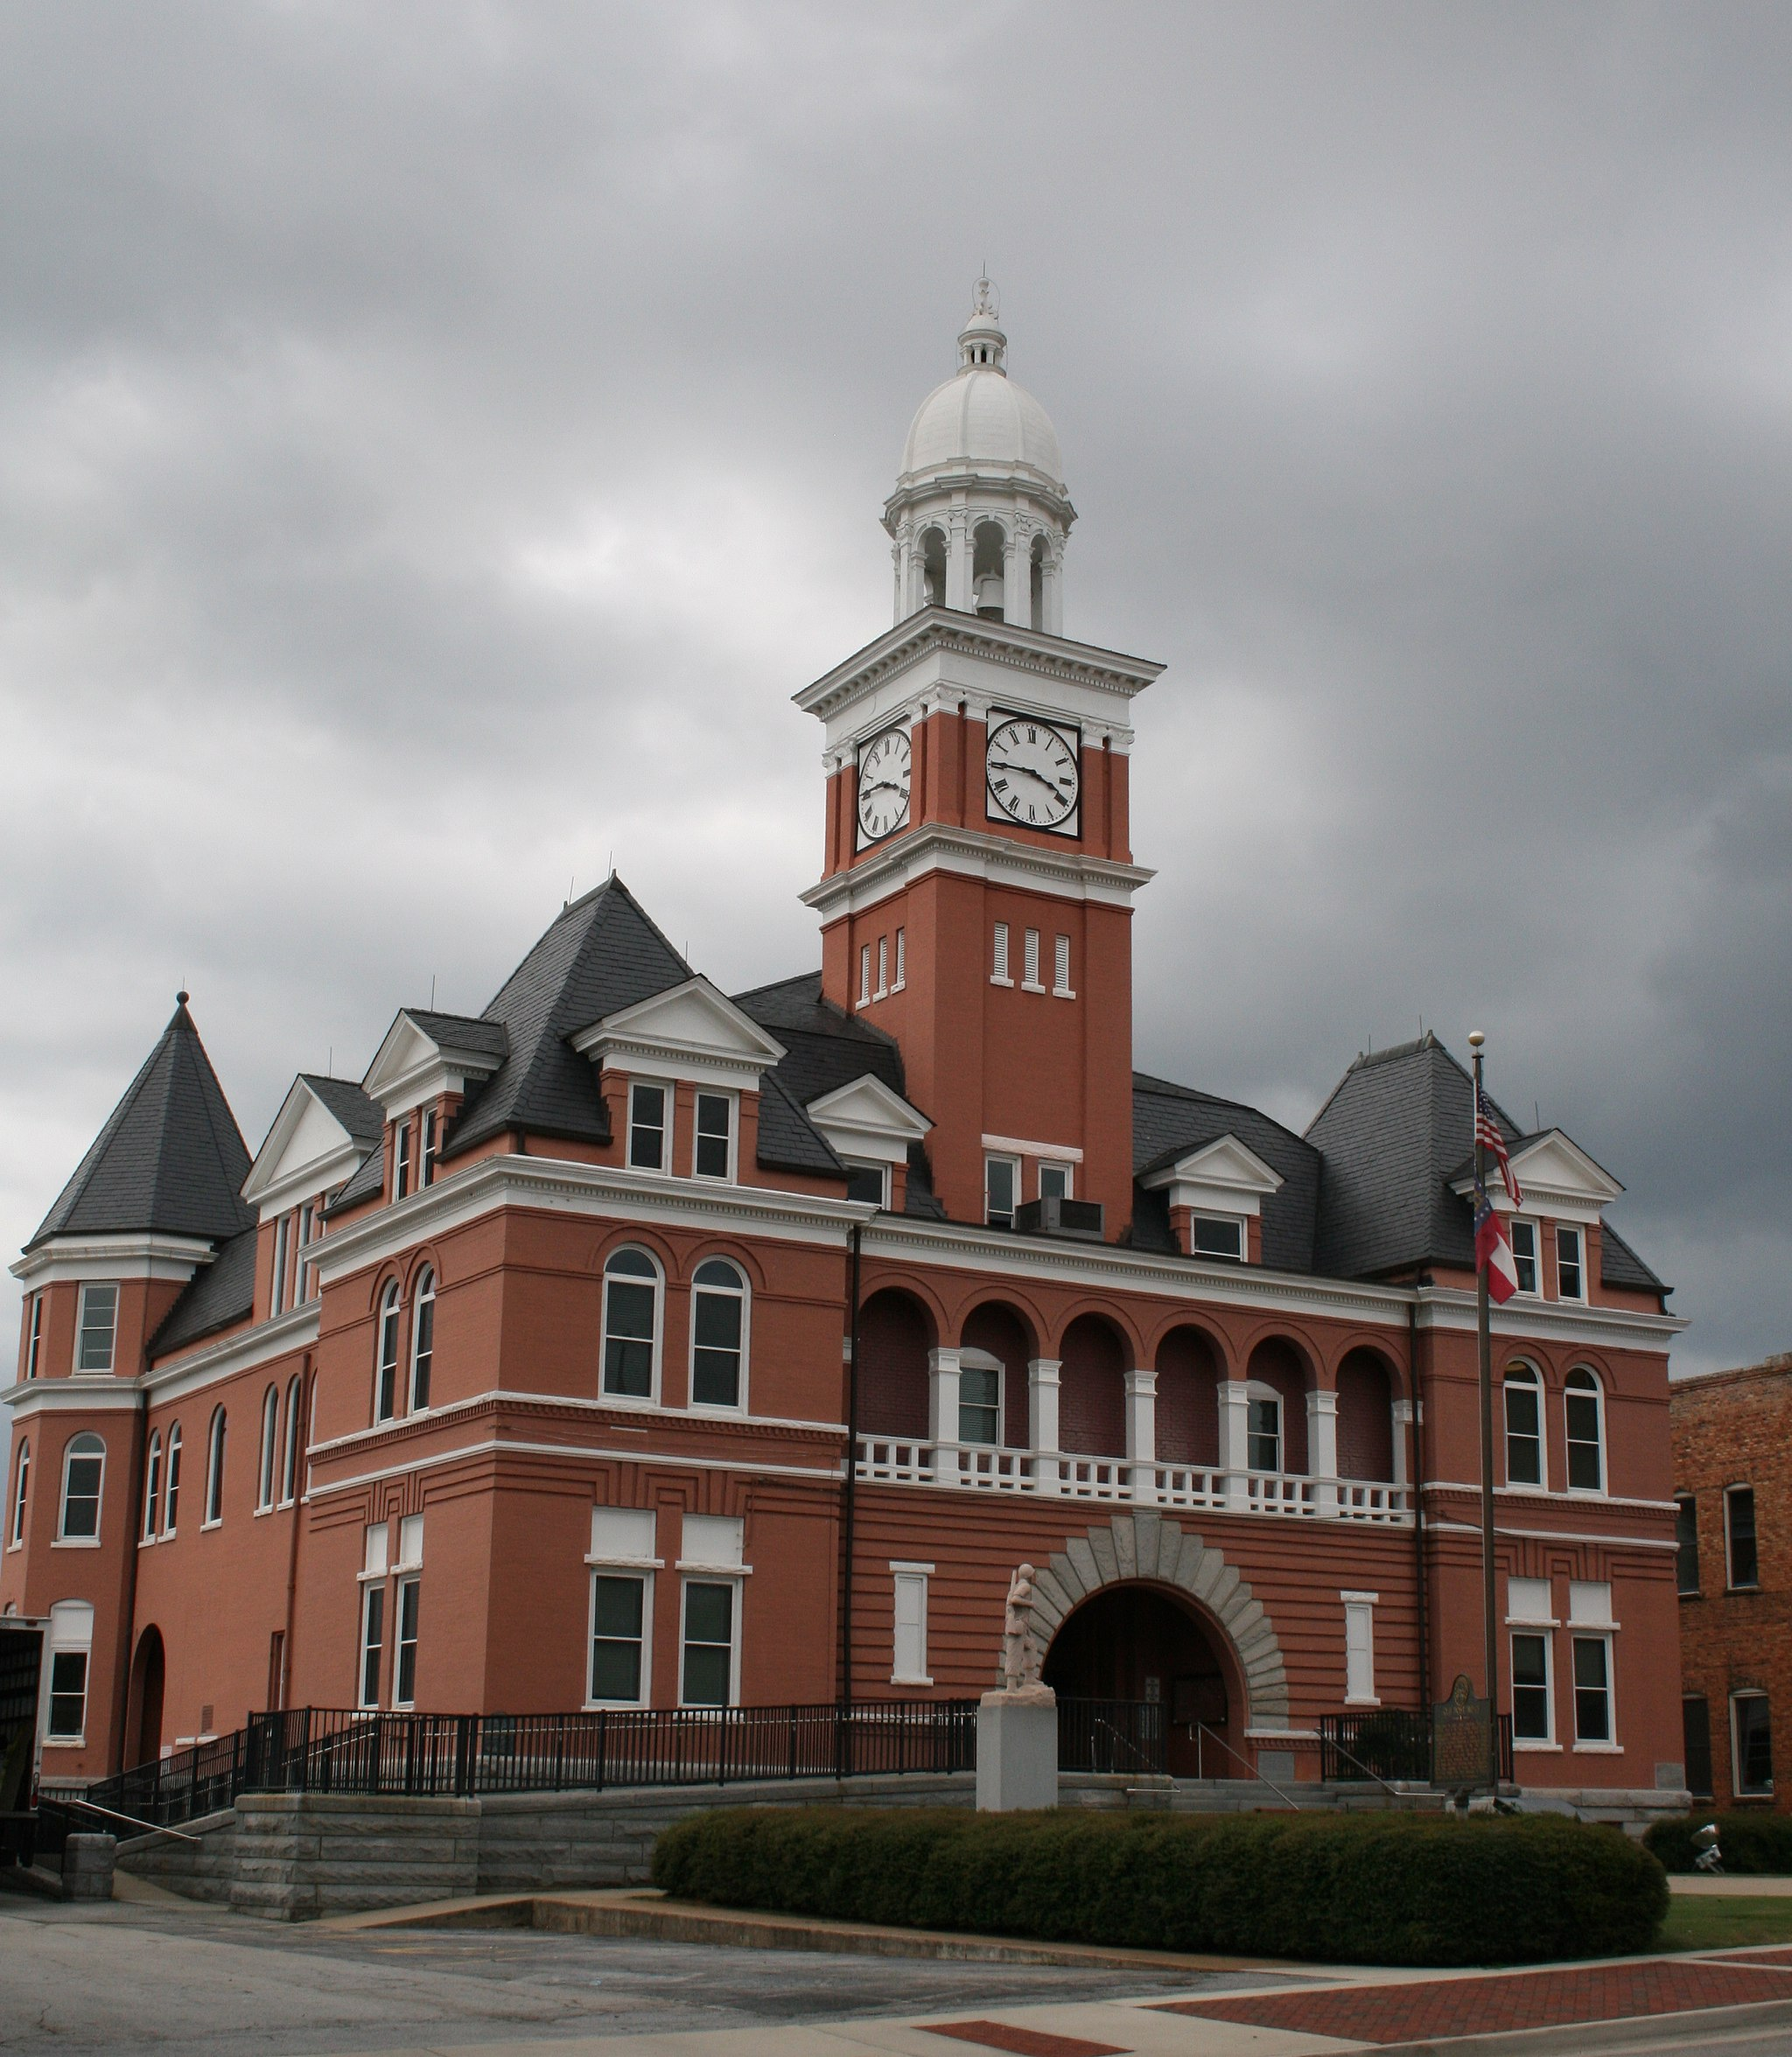 The Elberton - Elbert County Georgia Courthouse designed by Reuben Harrison Hunt (image3562)